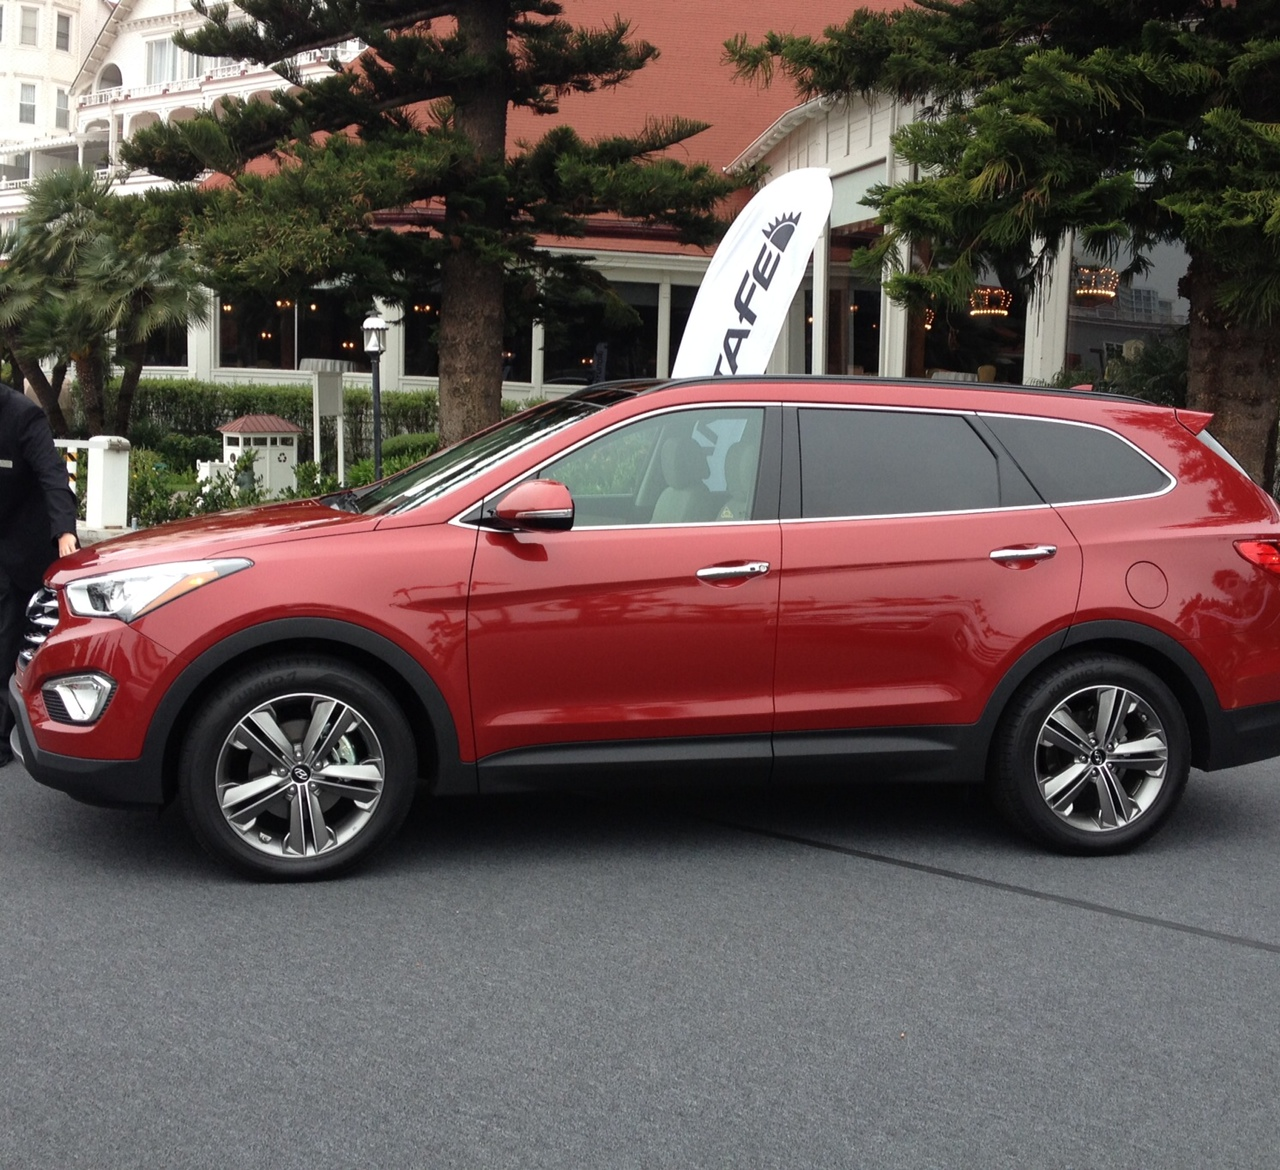 Hyundai 2013 Santa Fe: Made With Love For Your Family